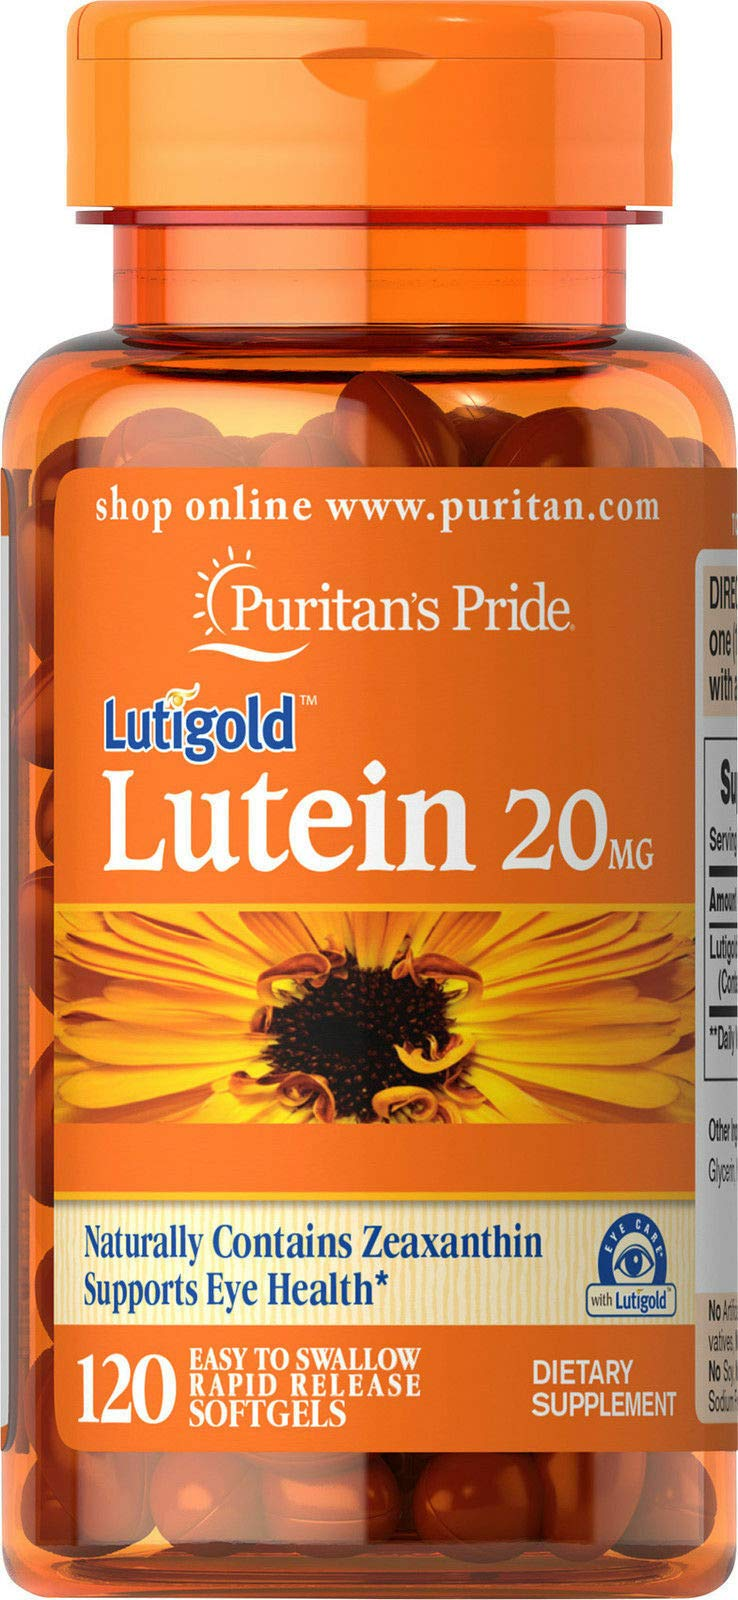 Puritans Pride Lutein 20 mg with Zeaxanthin Softgels, 120 Count by Puritans Pride